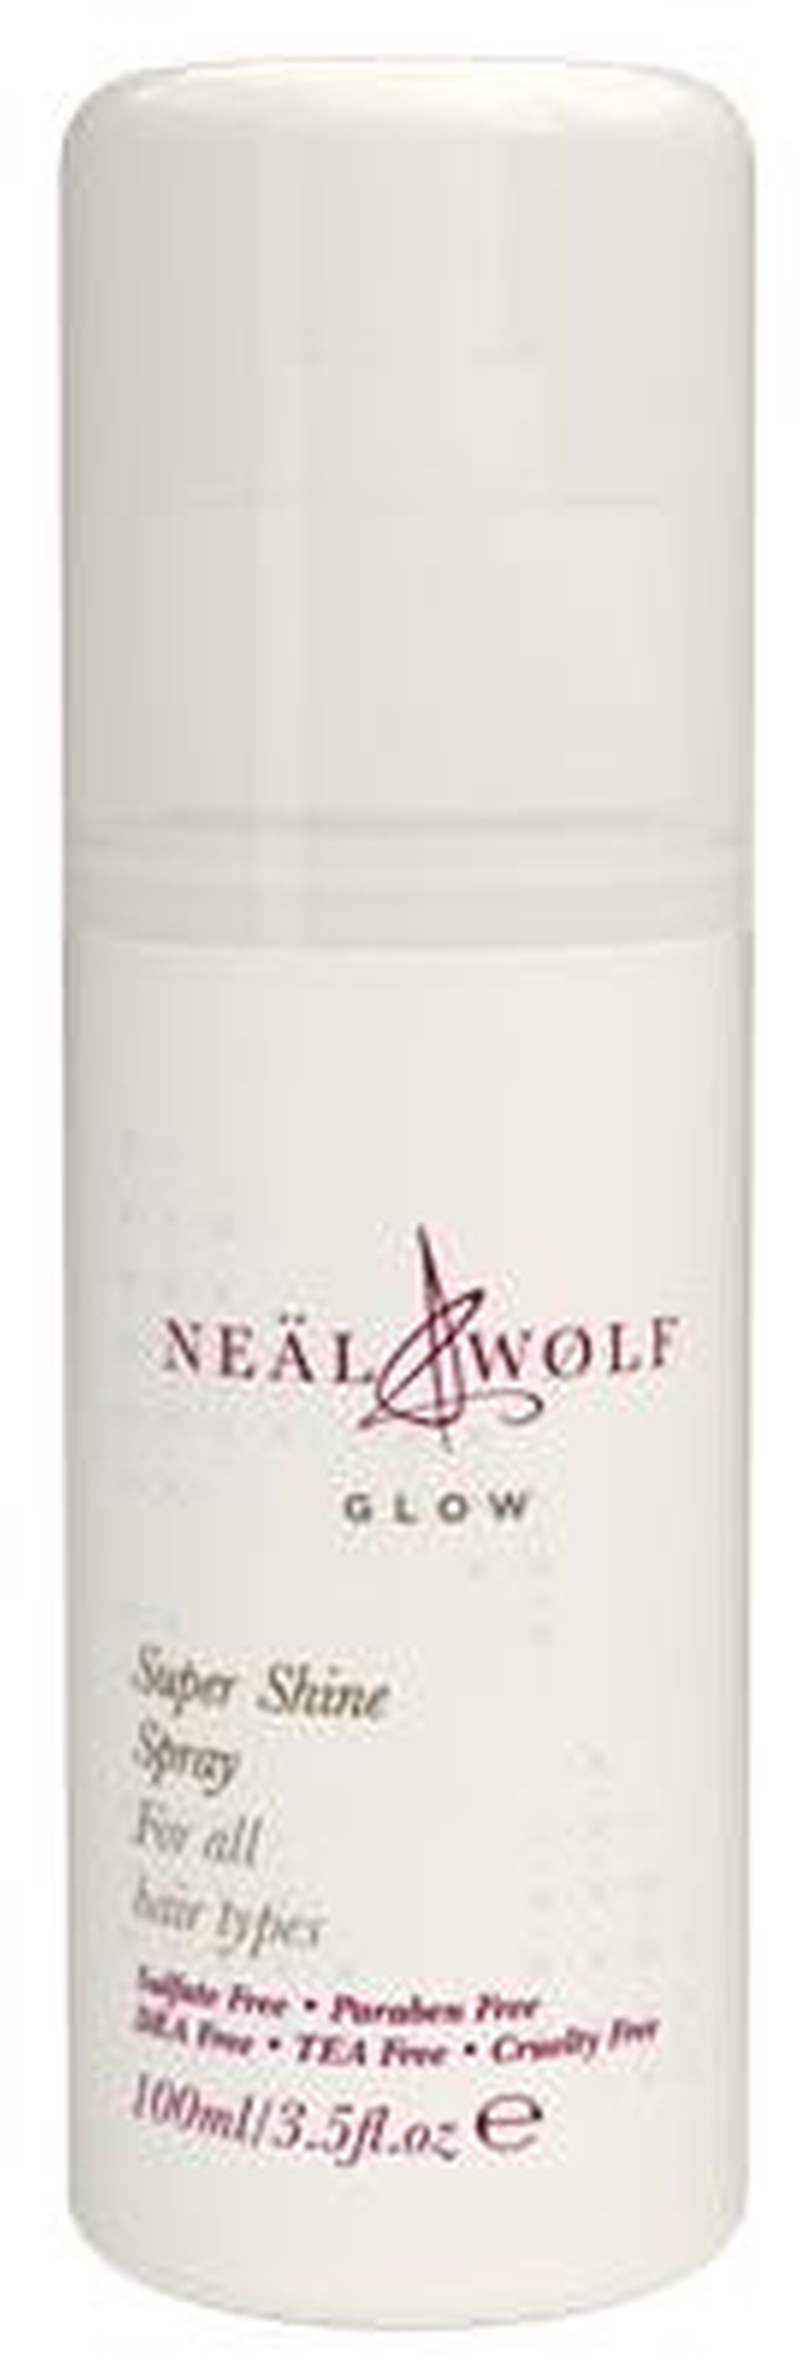 Neal and Wolf Glow Super Shine Spray 100ml